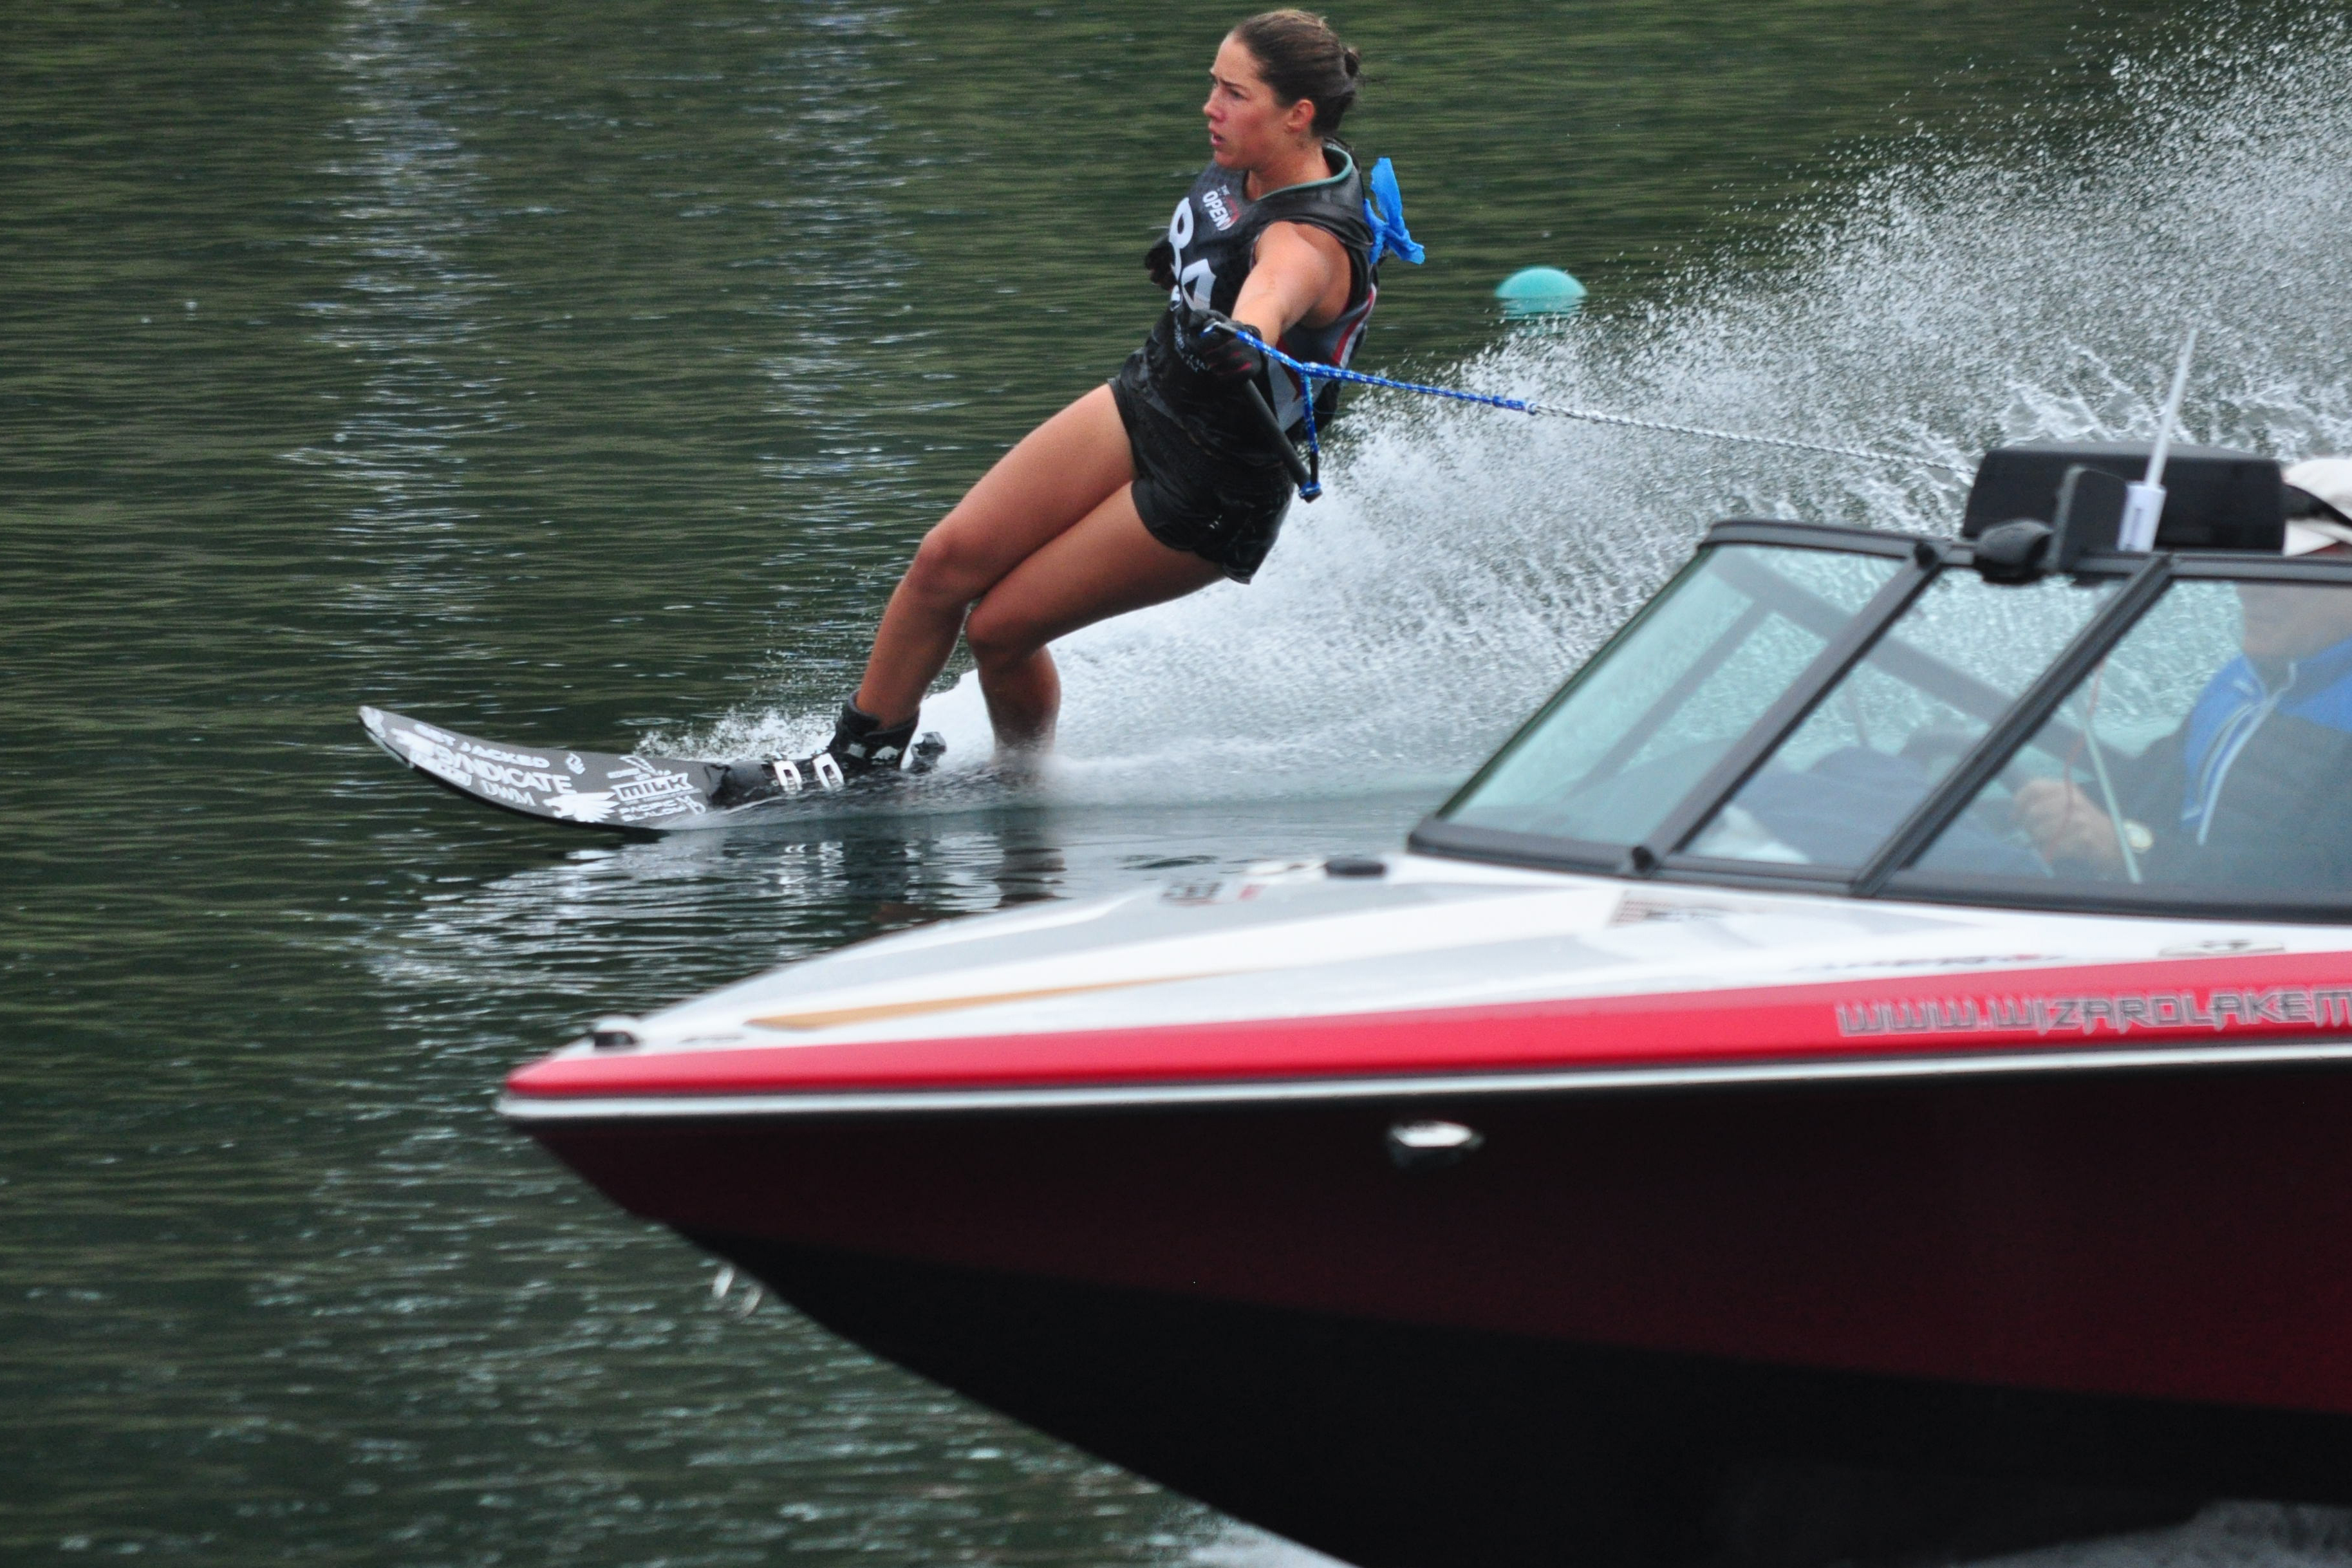 Jaimee Bull came on strong running into 39.5'/34mph consistently, achieving 3rd place at the Canadian Waterski Open